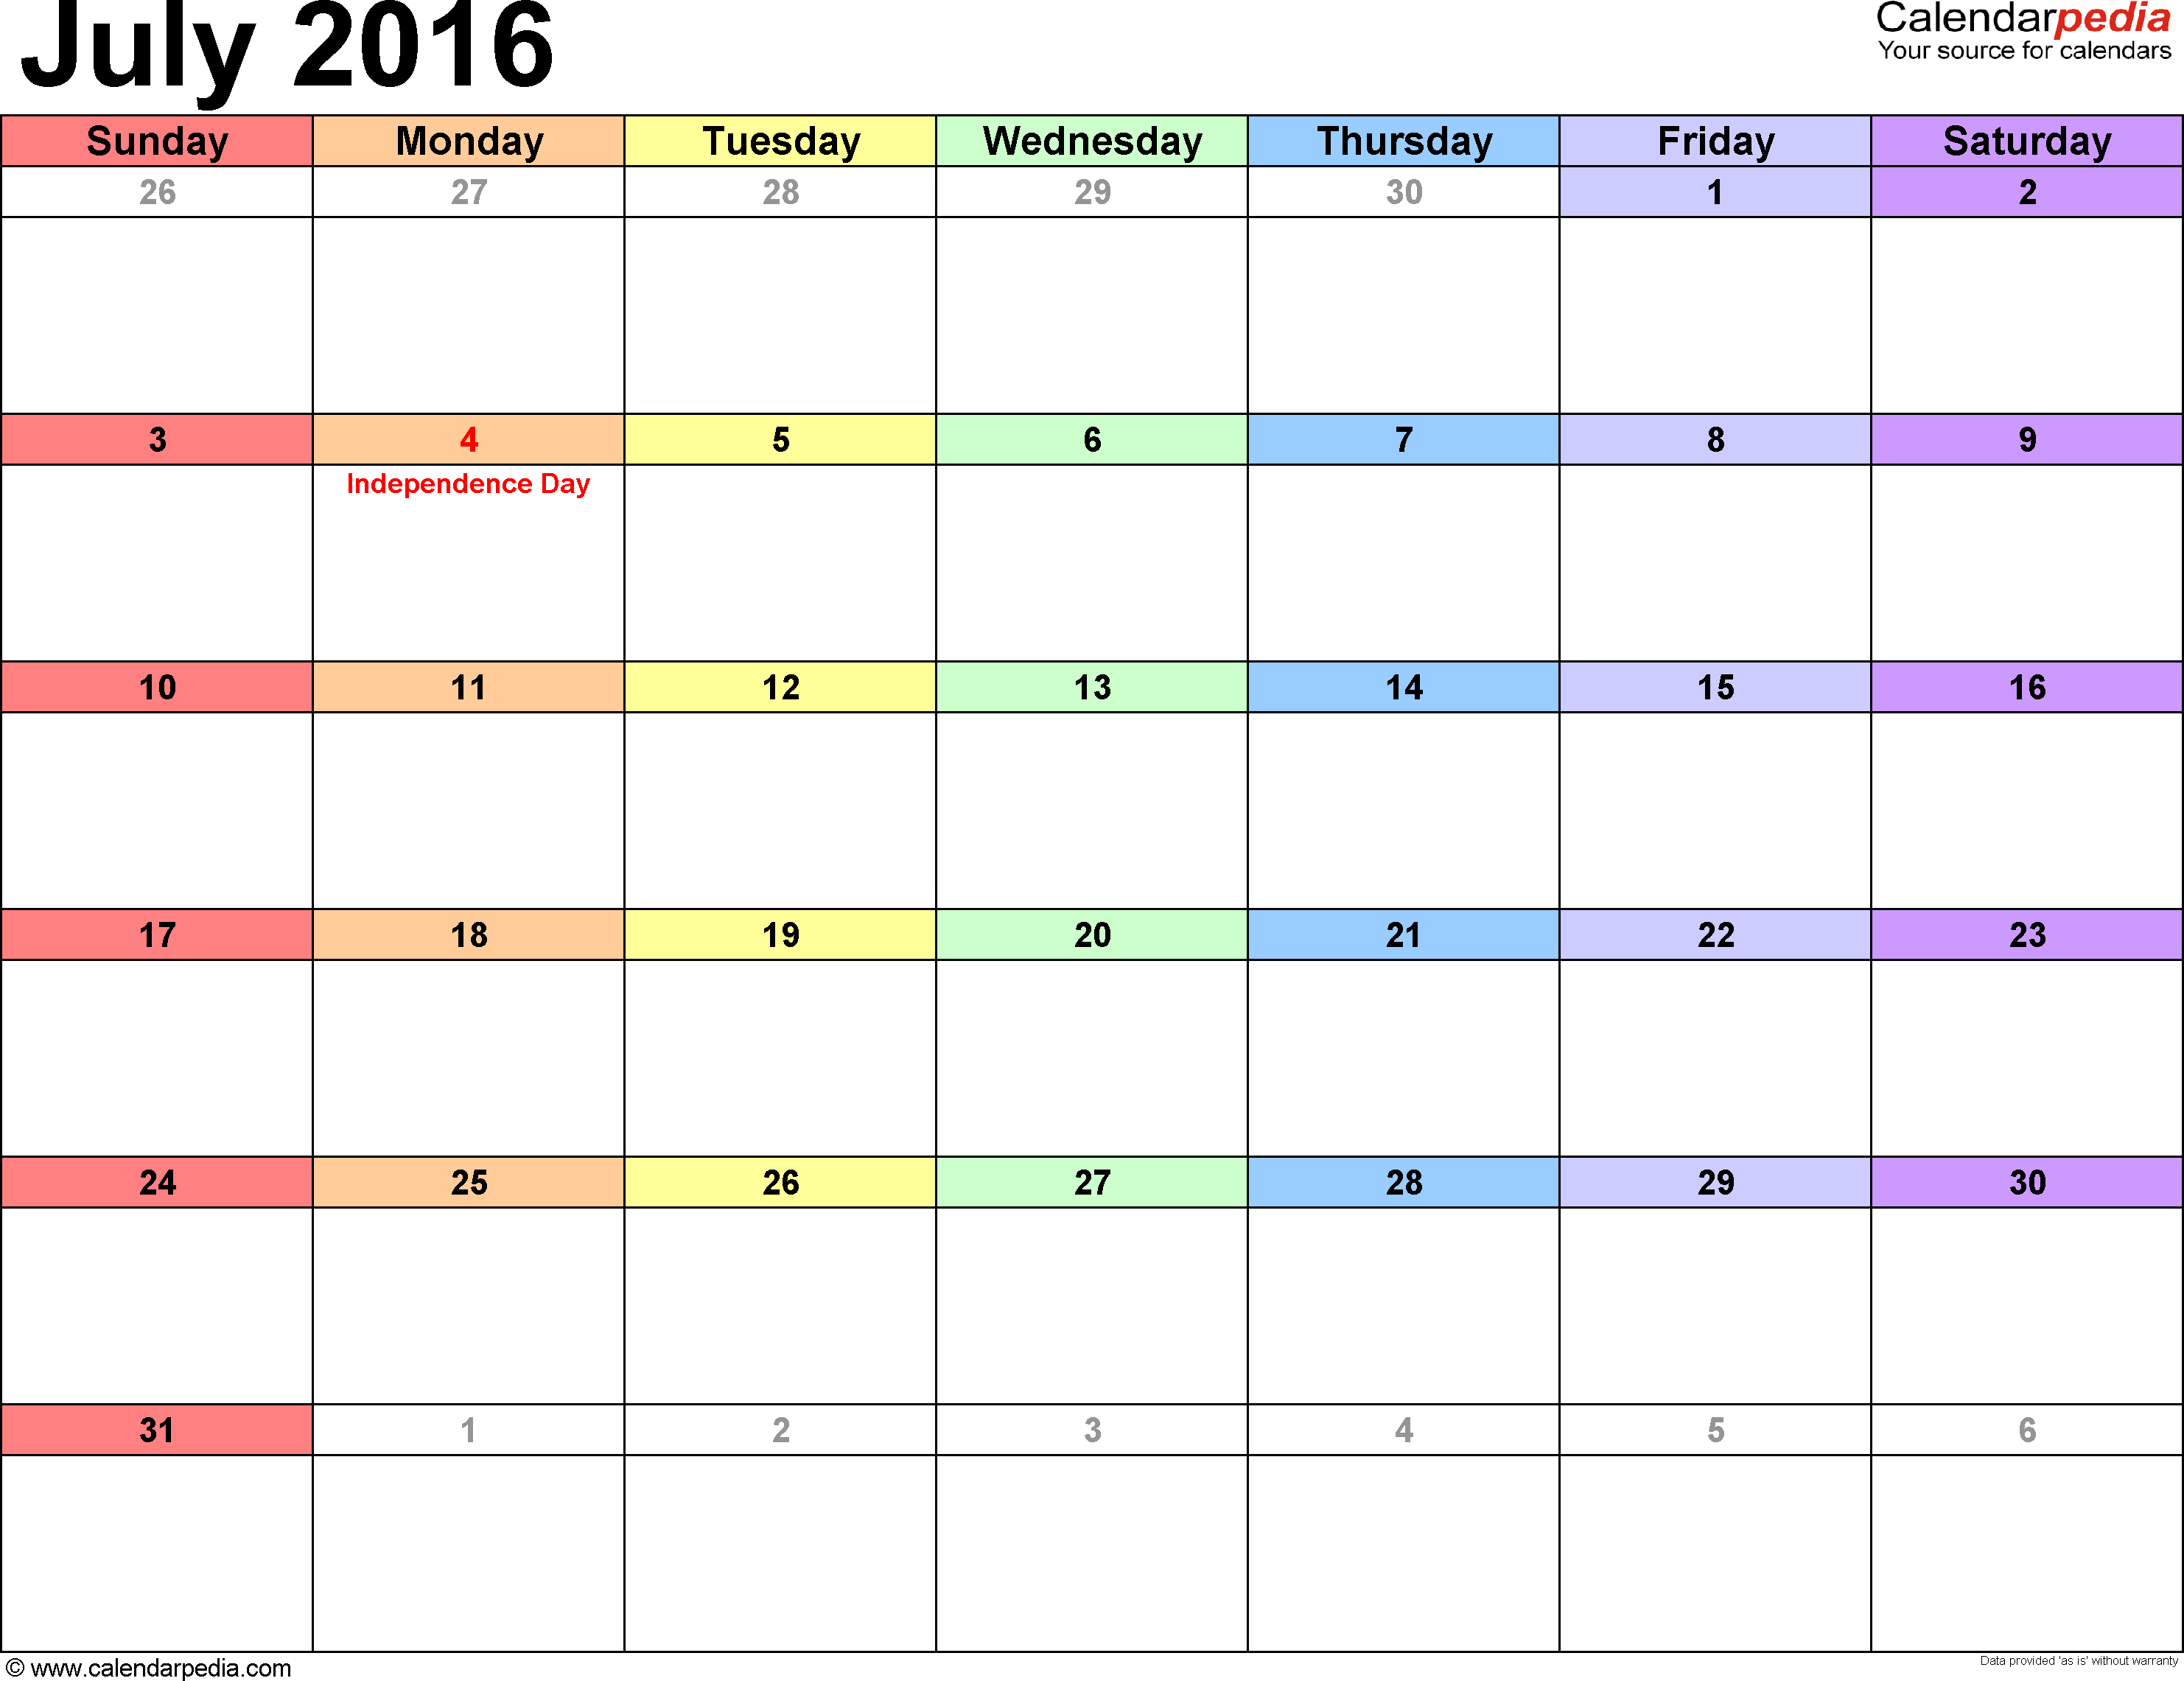 July 2016 calendar printable template